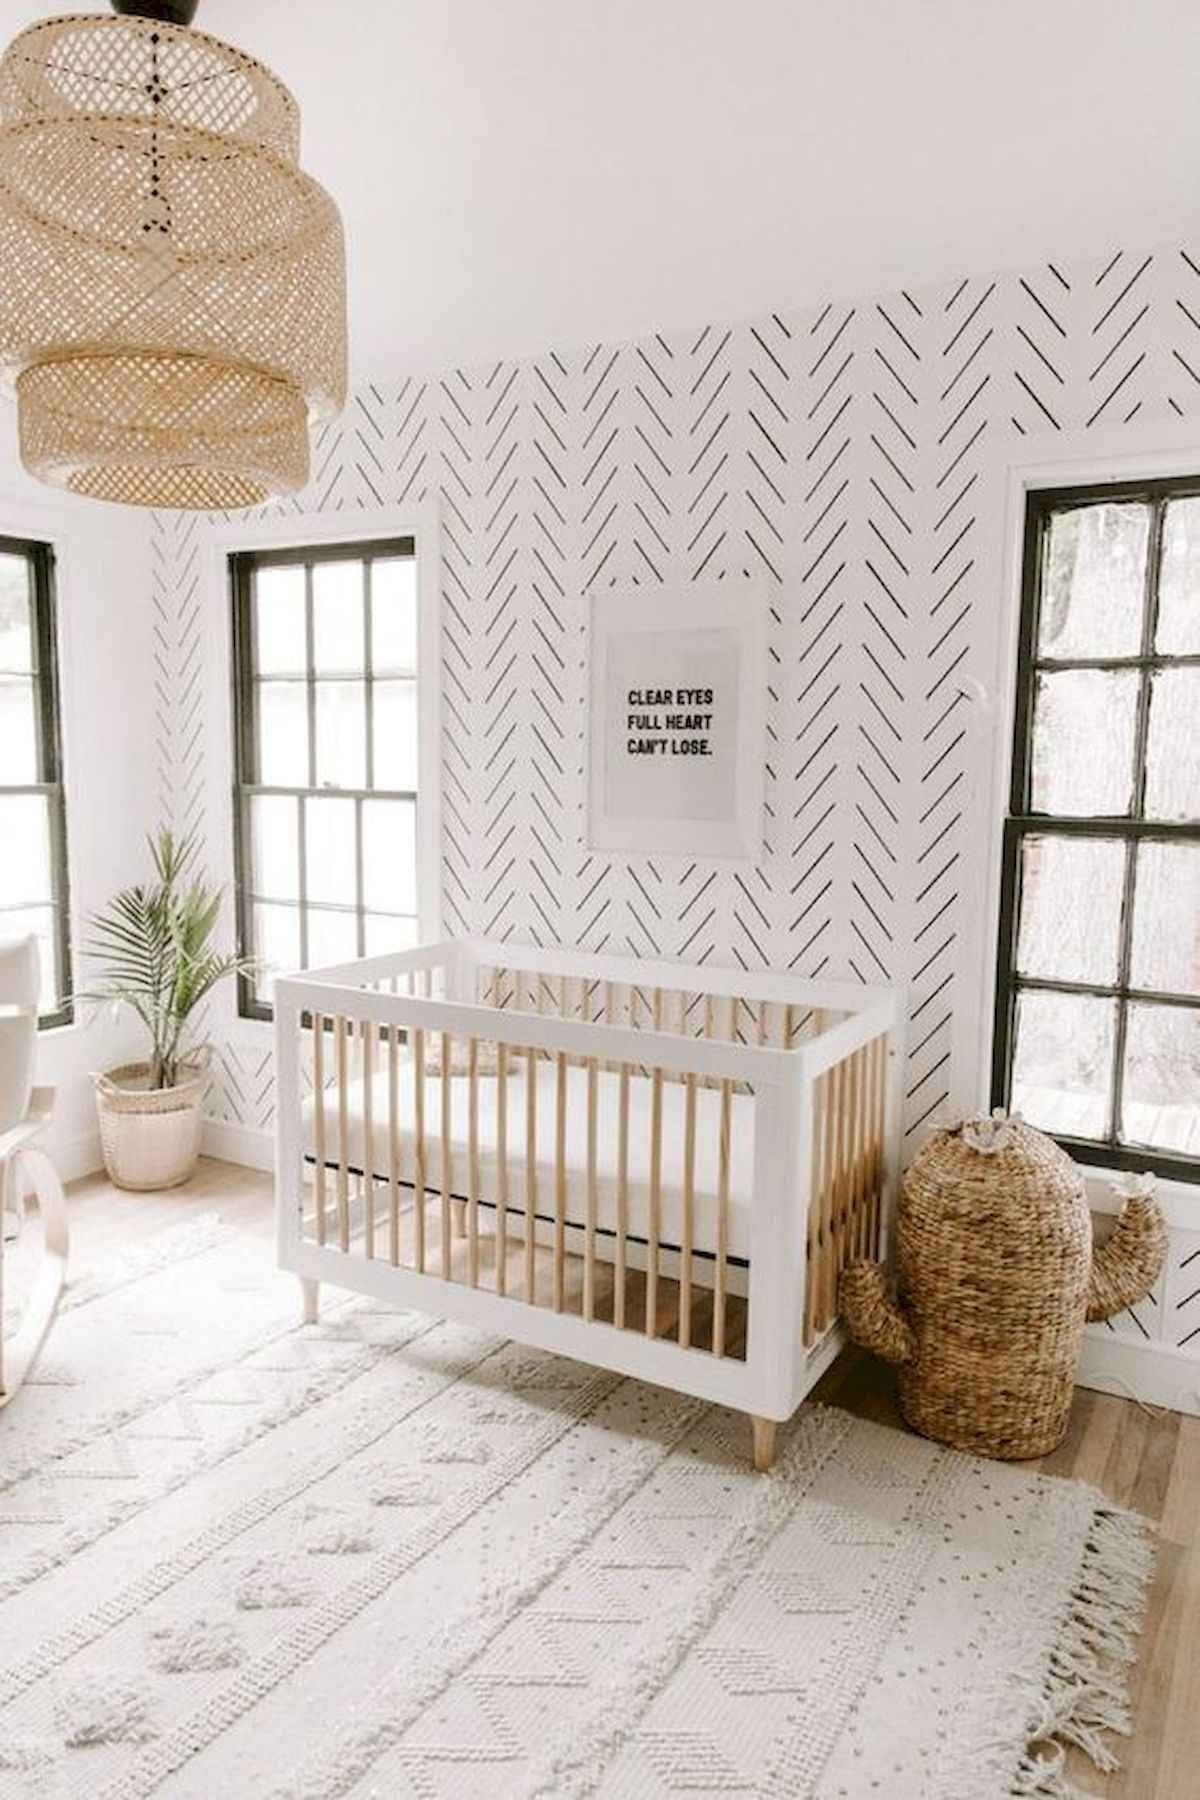 6 Hottest Baby Nursery Decor Trends and Ideas for 2019